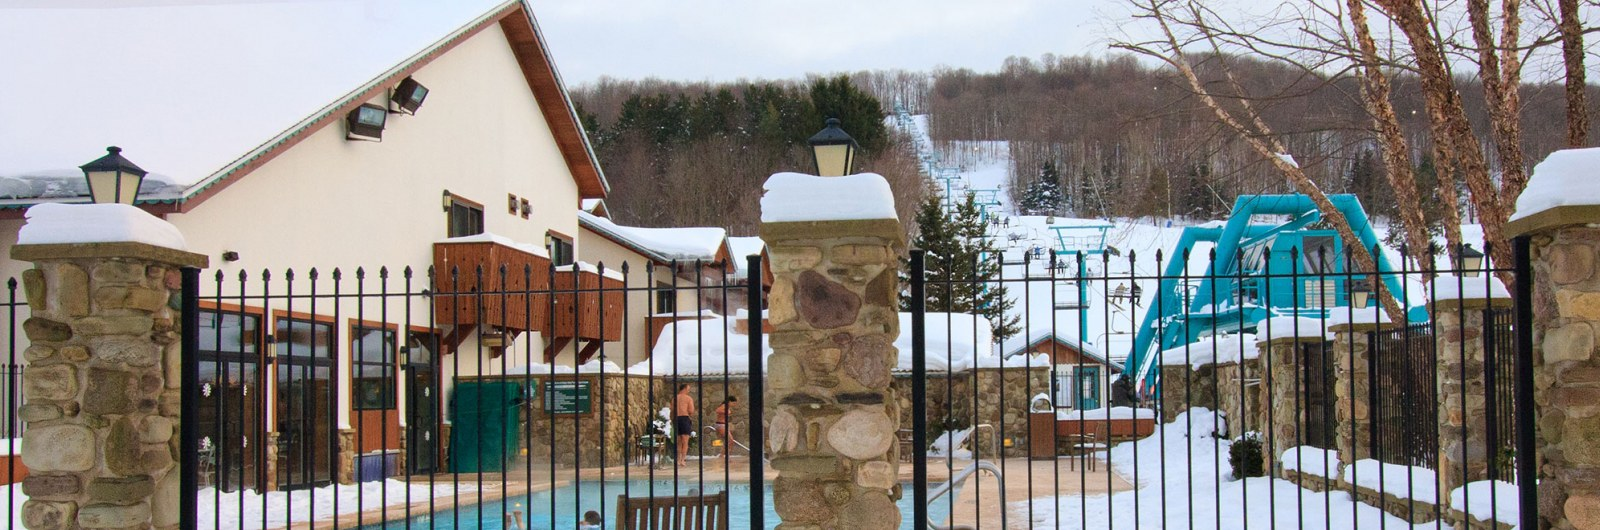 Christmas Specials 2020 Holiday Valley Ski & Stay Packages & Deals @Holiday Valley Ski Resort NY